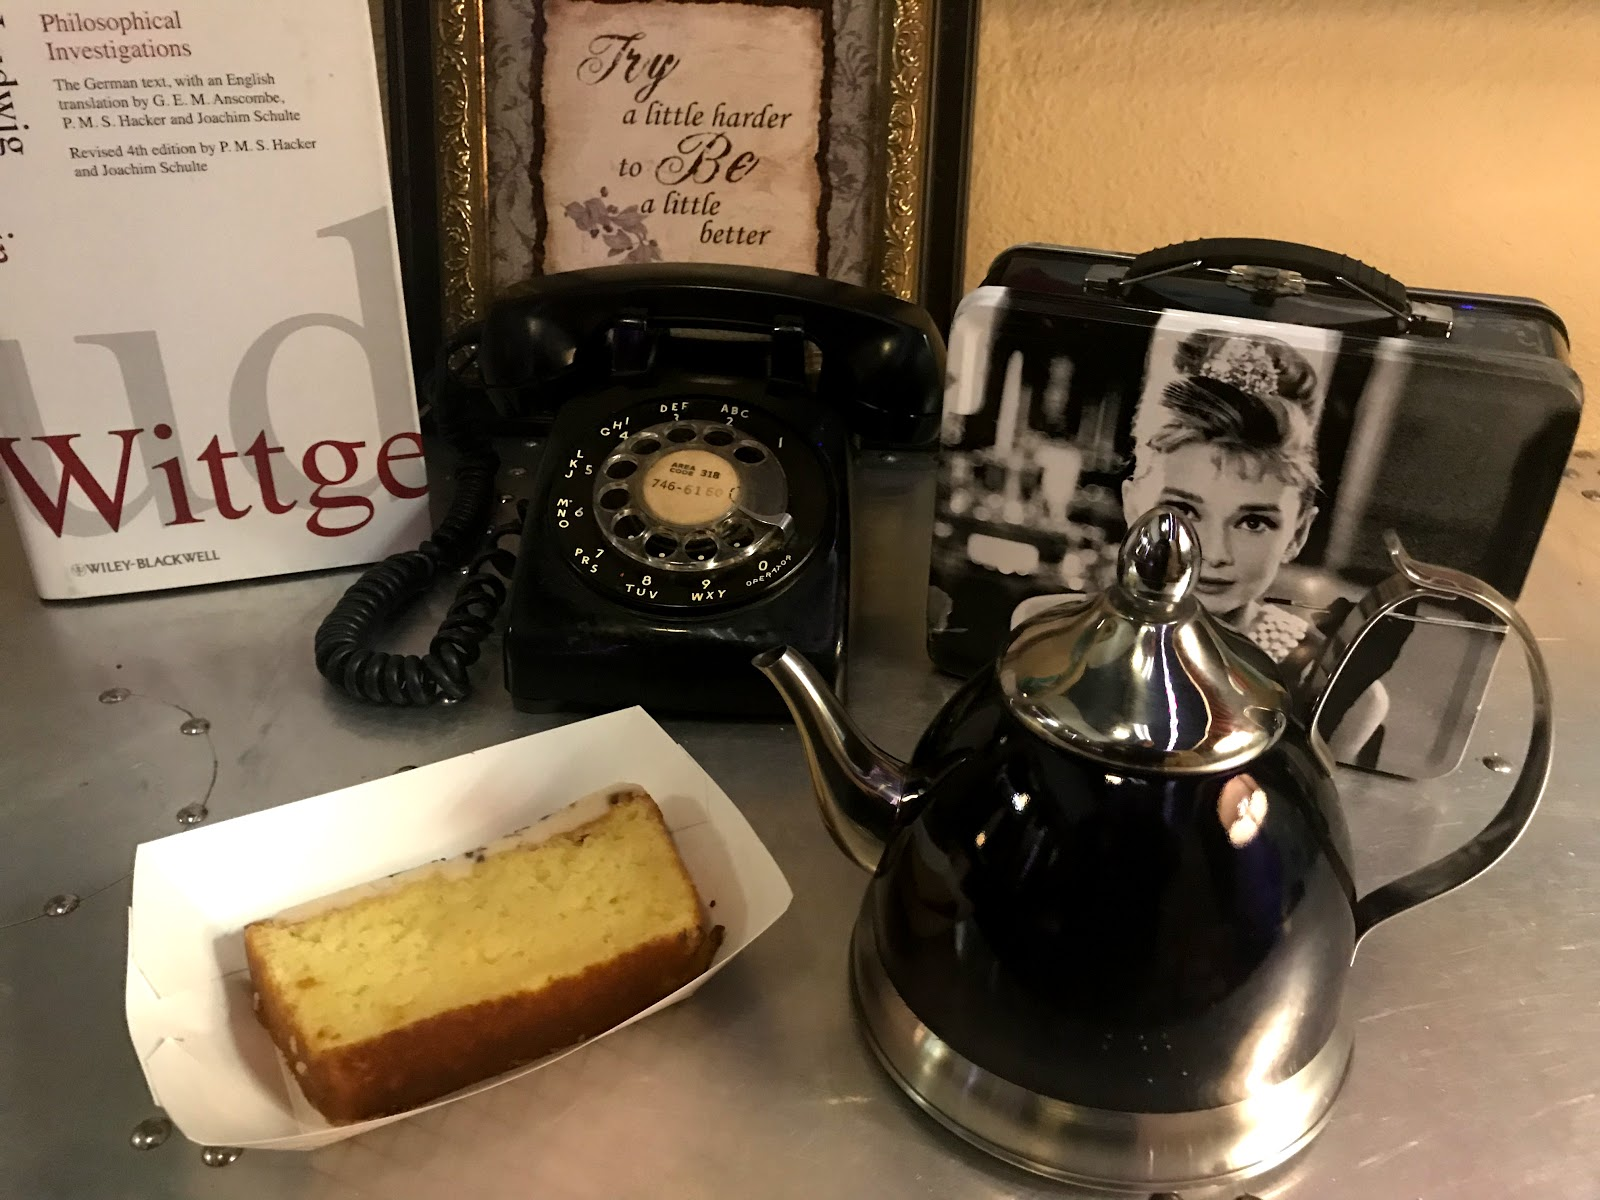 Image: Tea pot, cake and pictures at a vintage coffee house in Bossier City Louisiana.Visits and pictures taken by Tangie Bell. seen First on Bits and Babbles blog